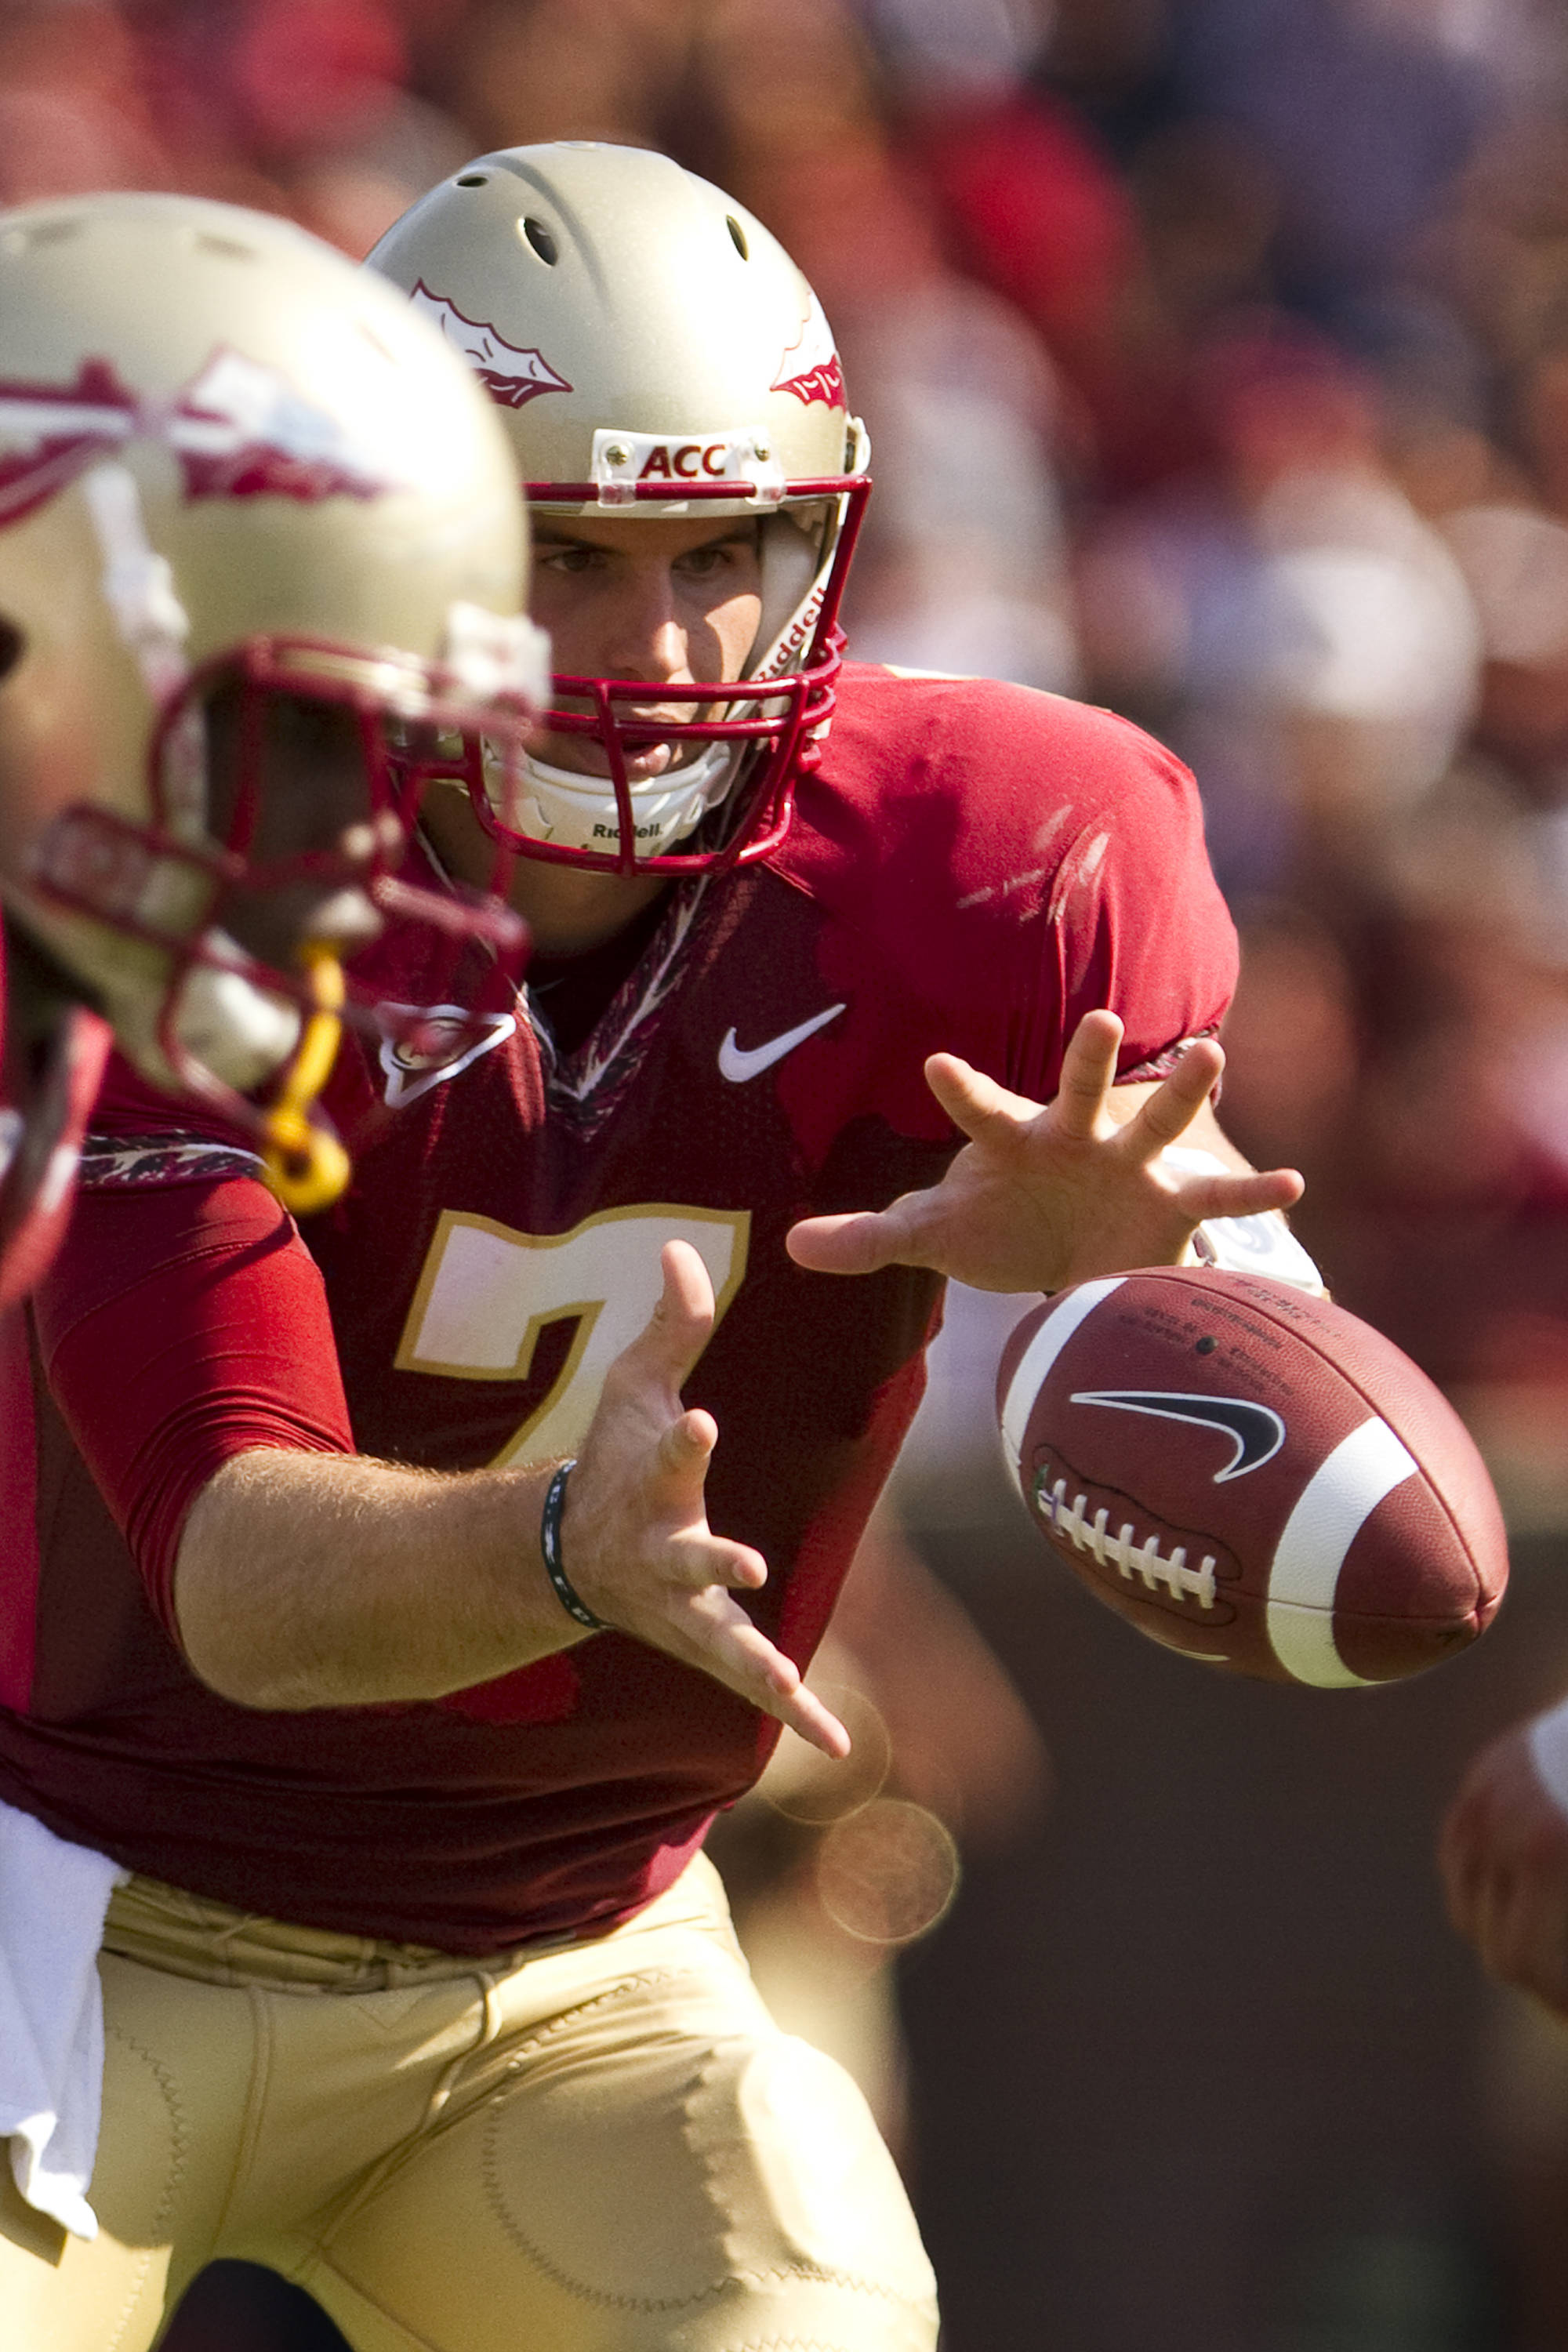 Christian Ponder (7) receives the snap in the first half